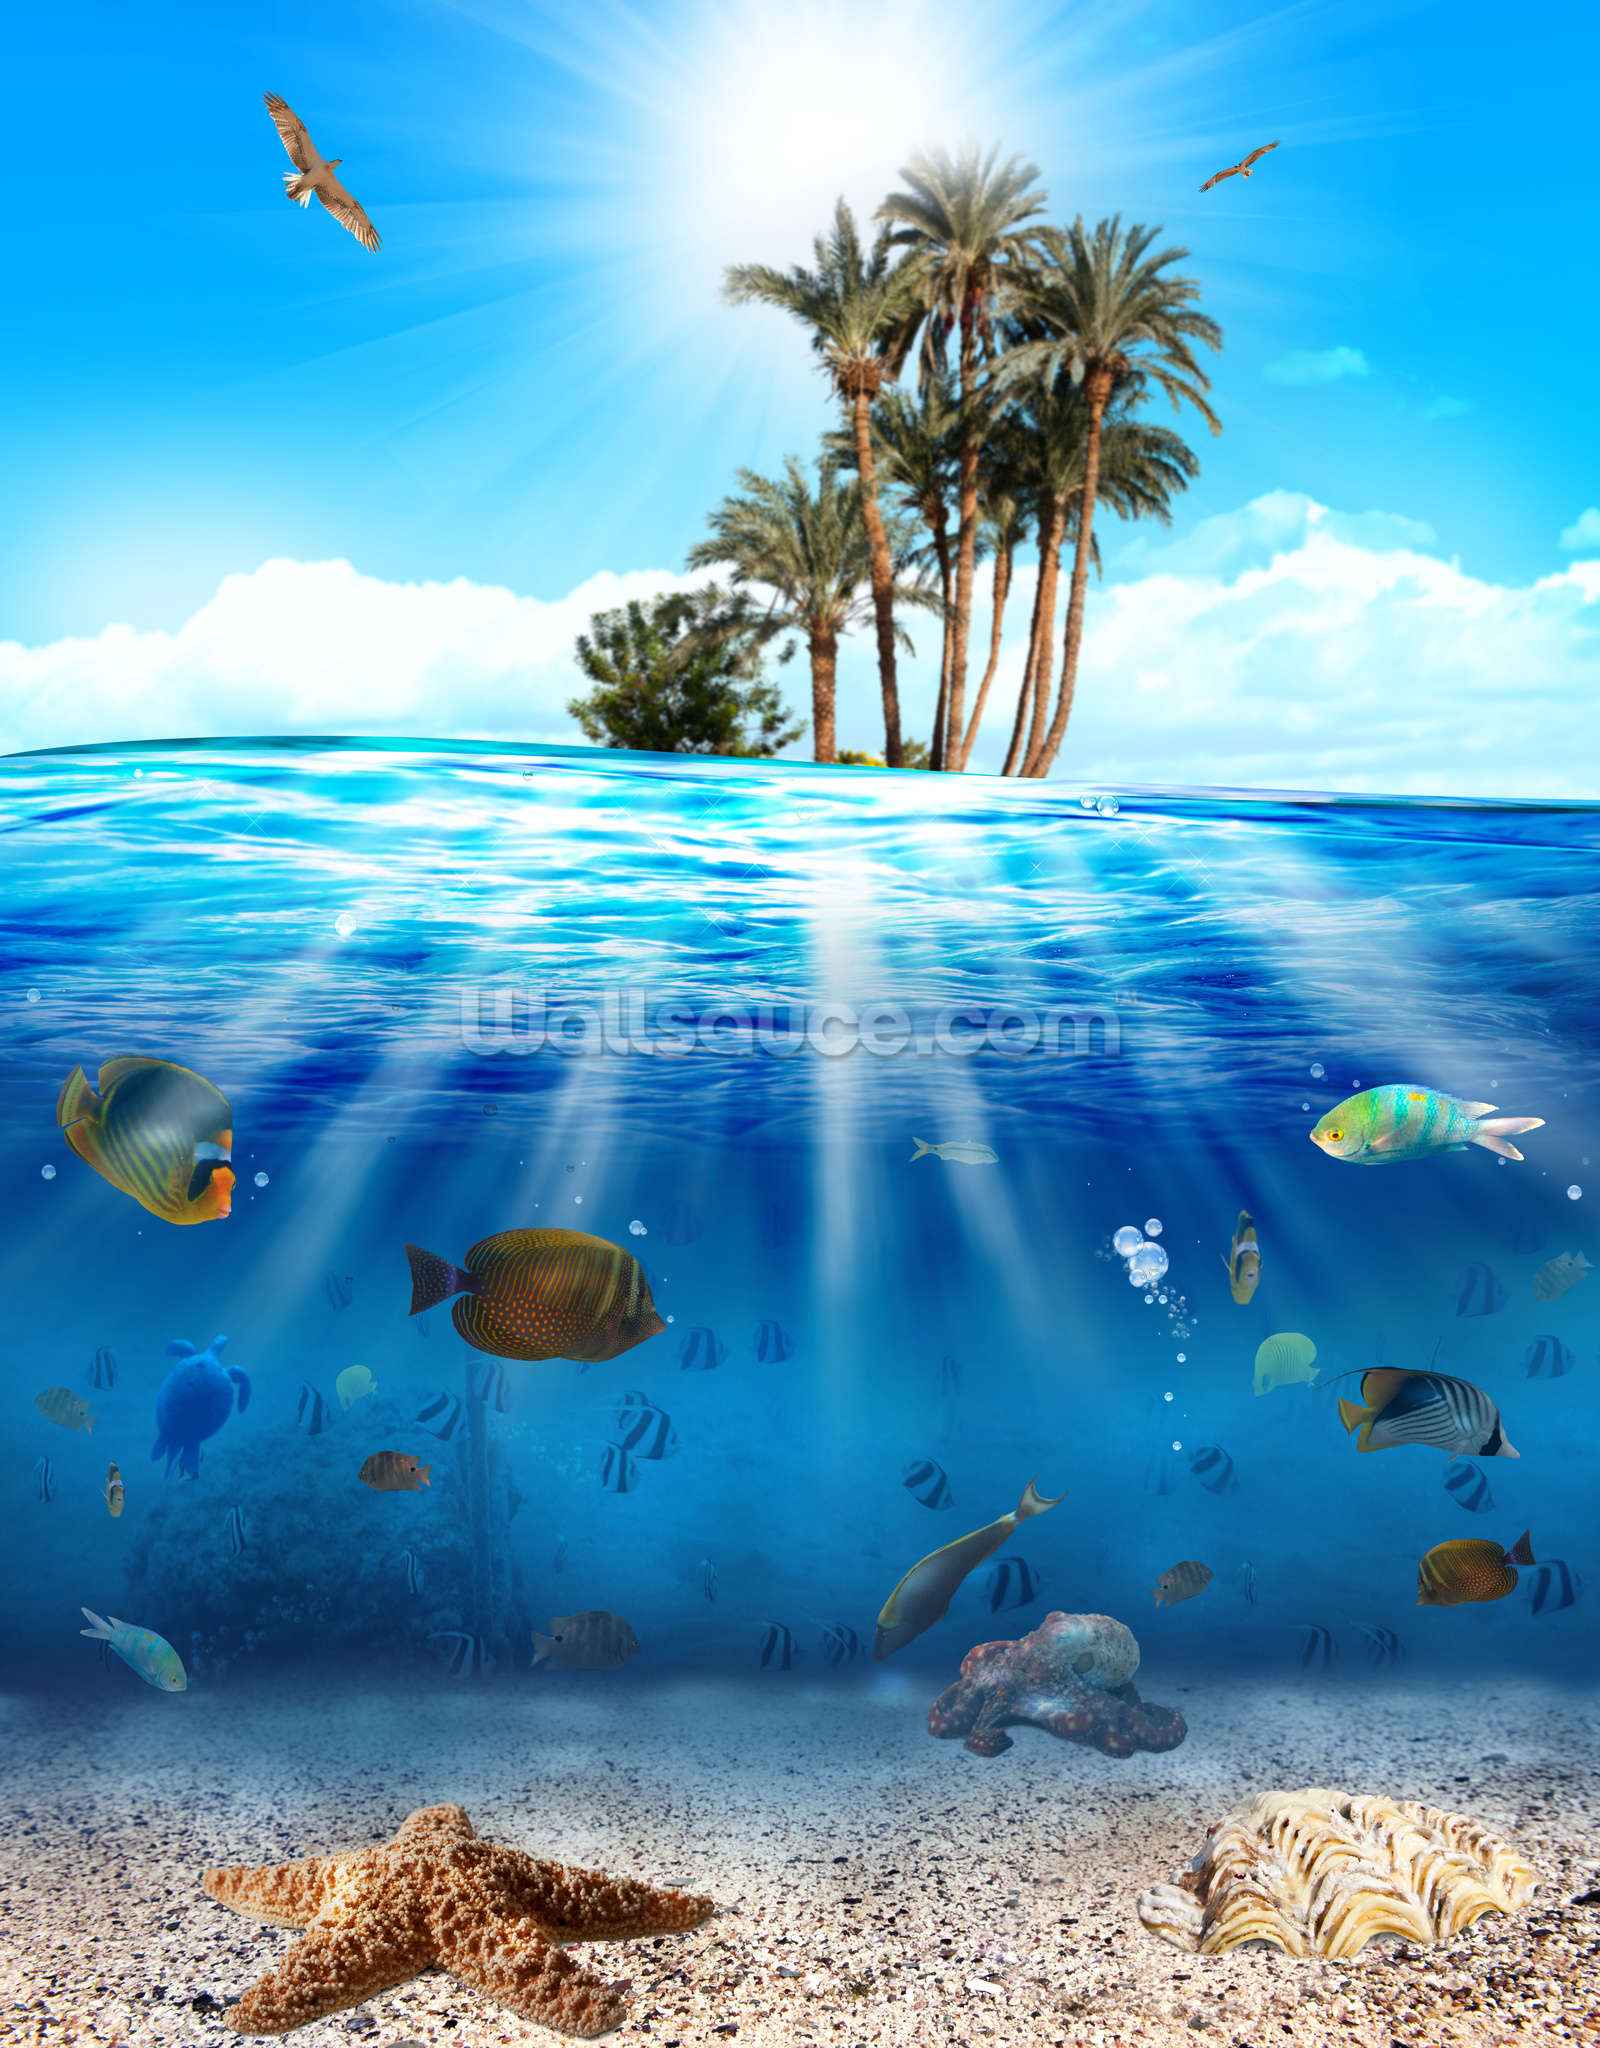 Underwater scene wallpaper wall mural wallsauce usa for Wall scenes